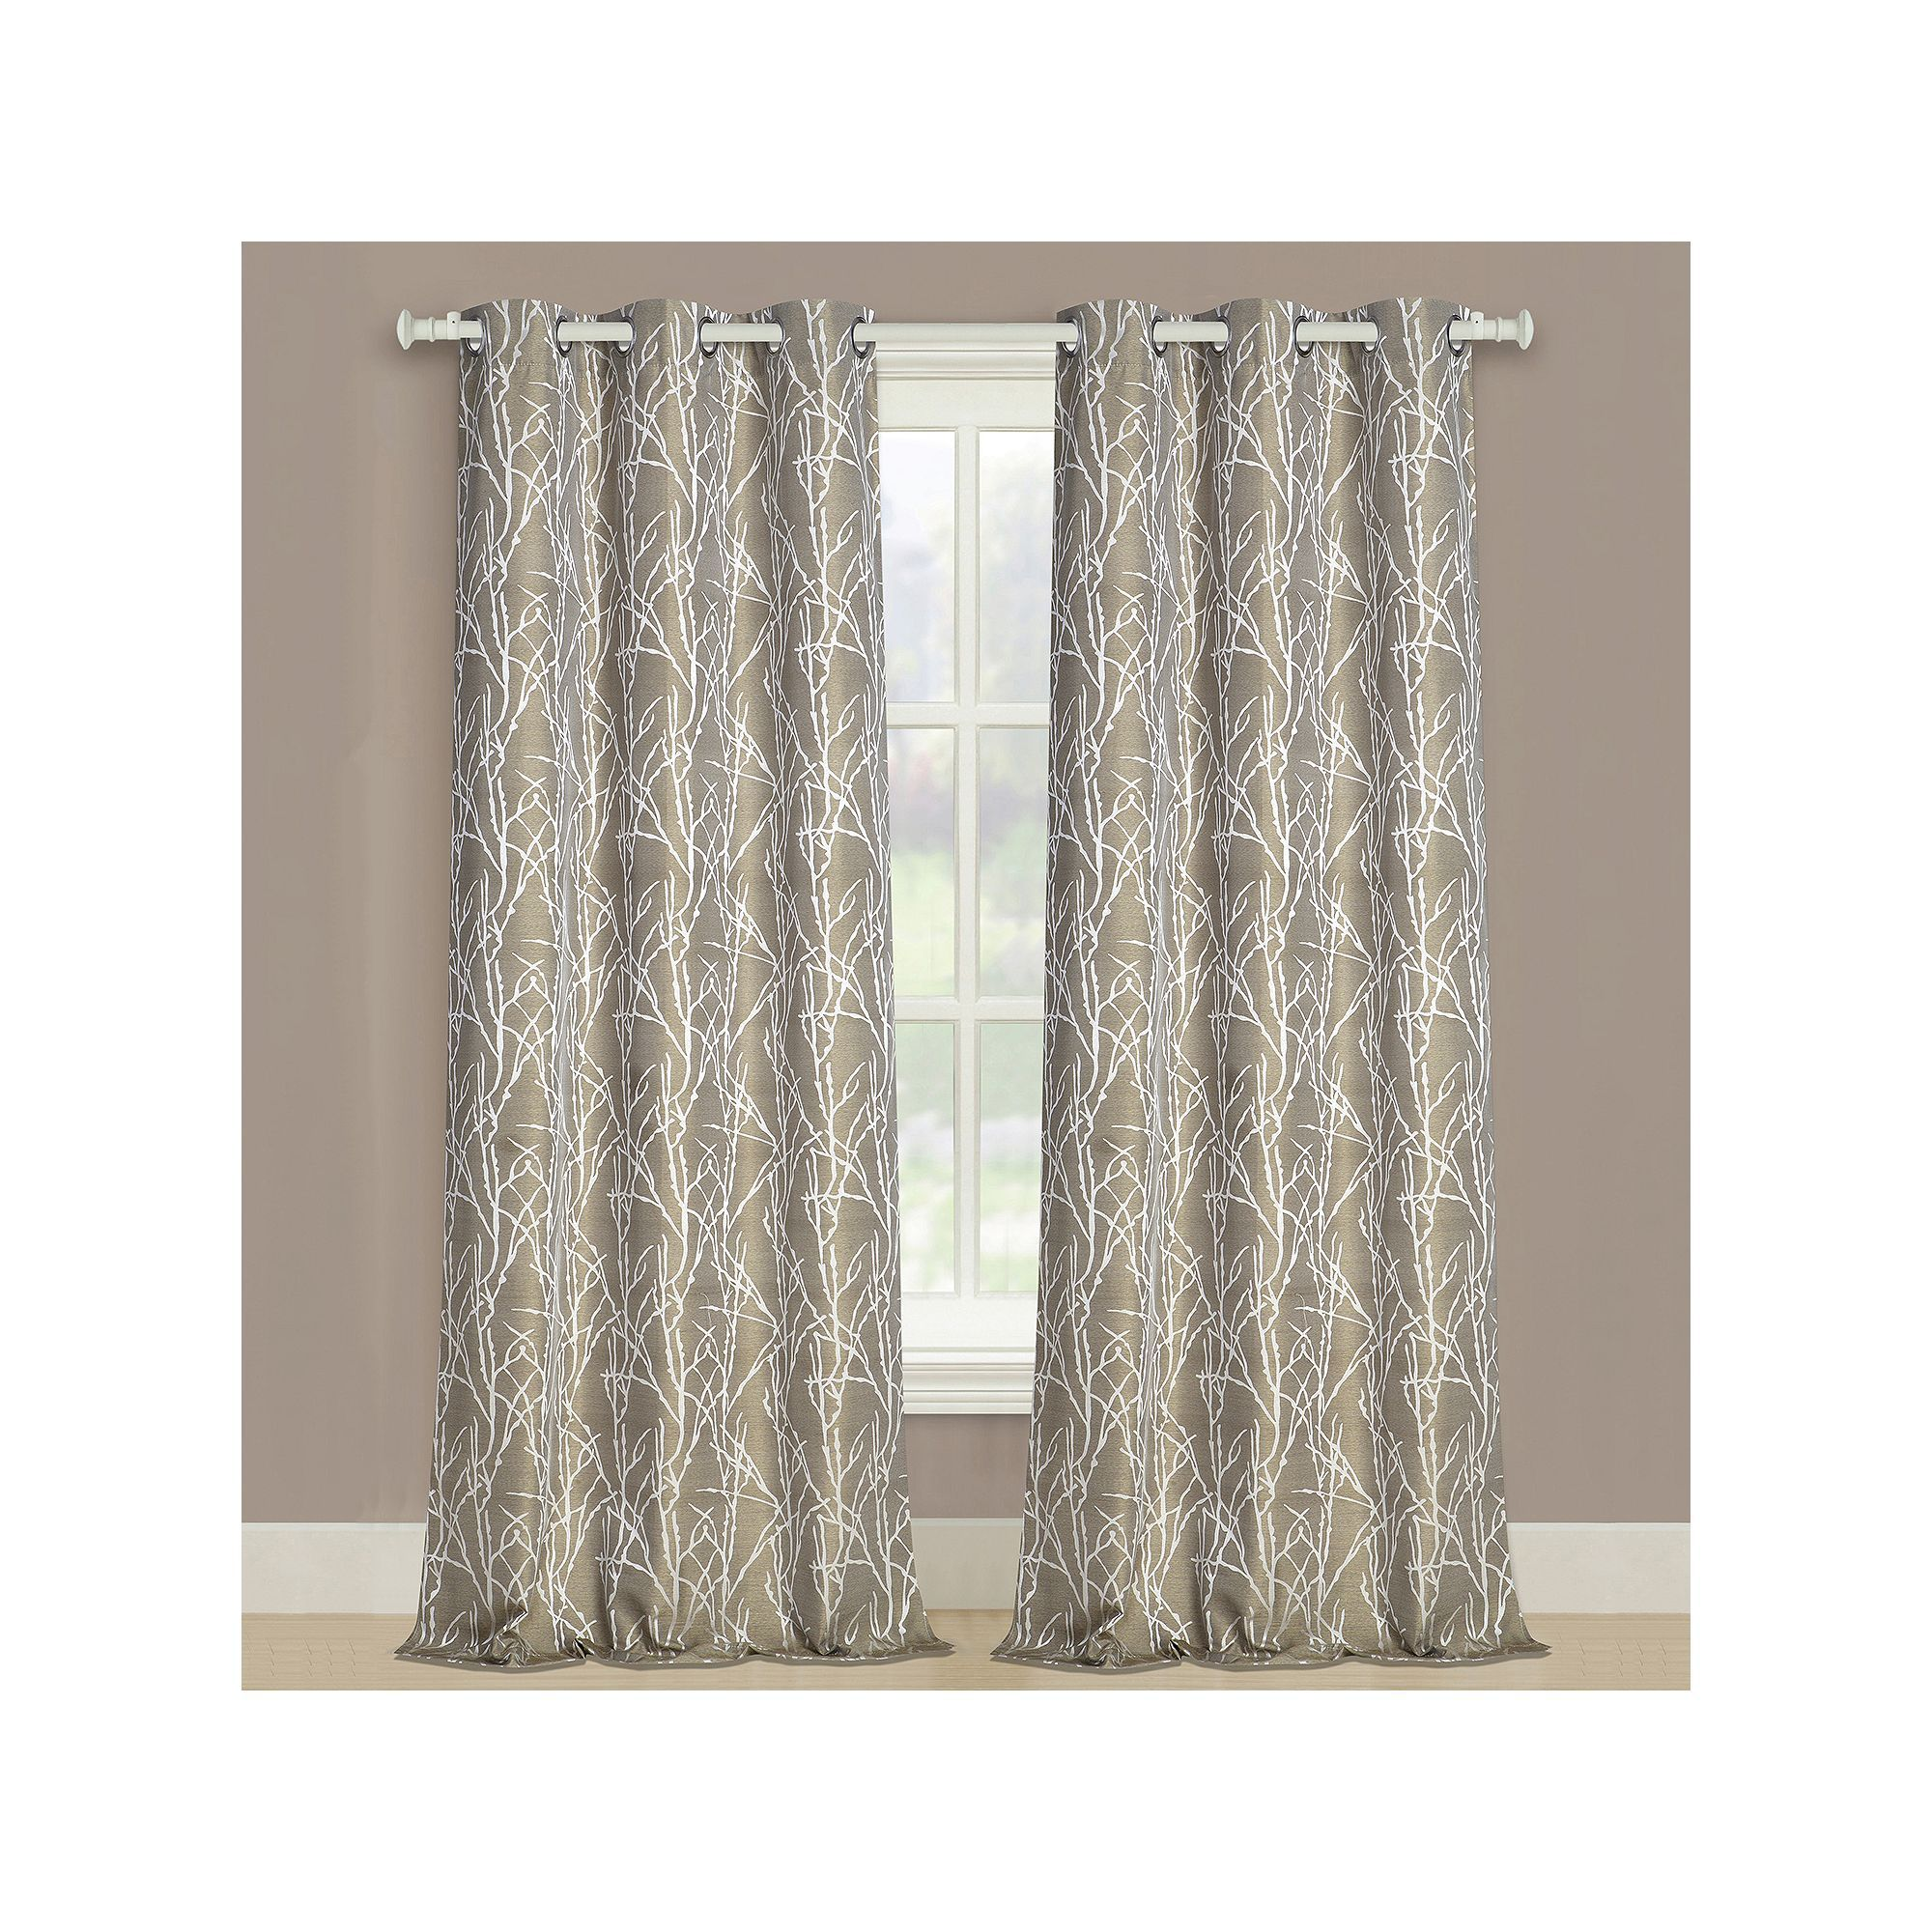 United Curtain Co 2 Pack Taylor Twig Floral Window Curtains